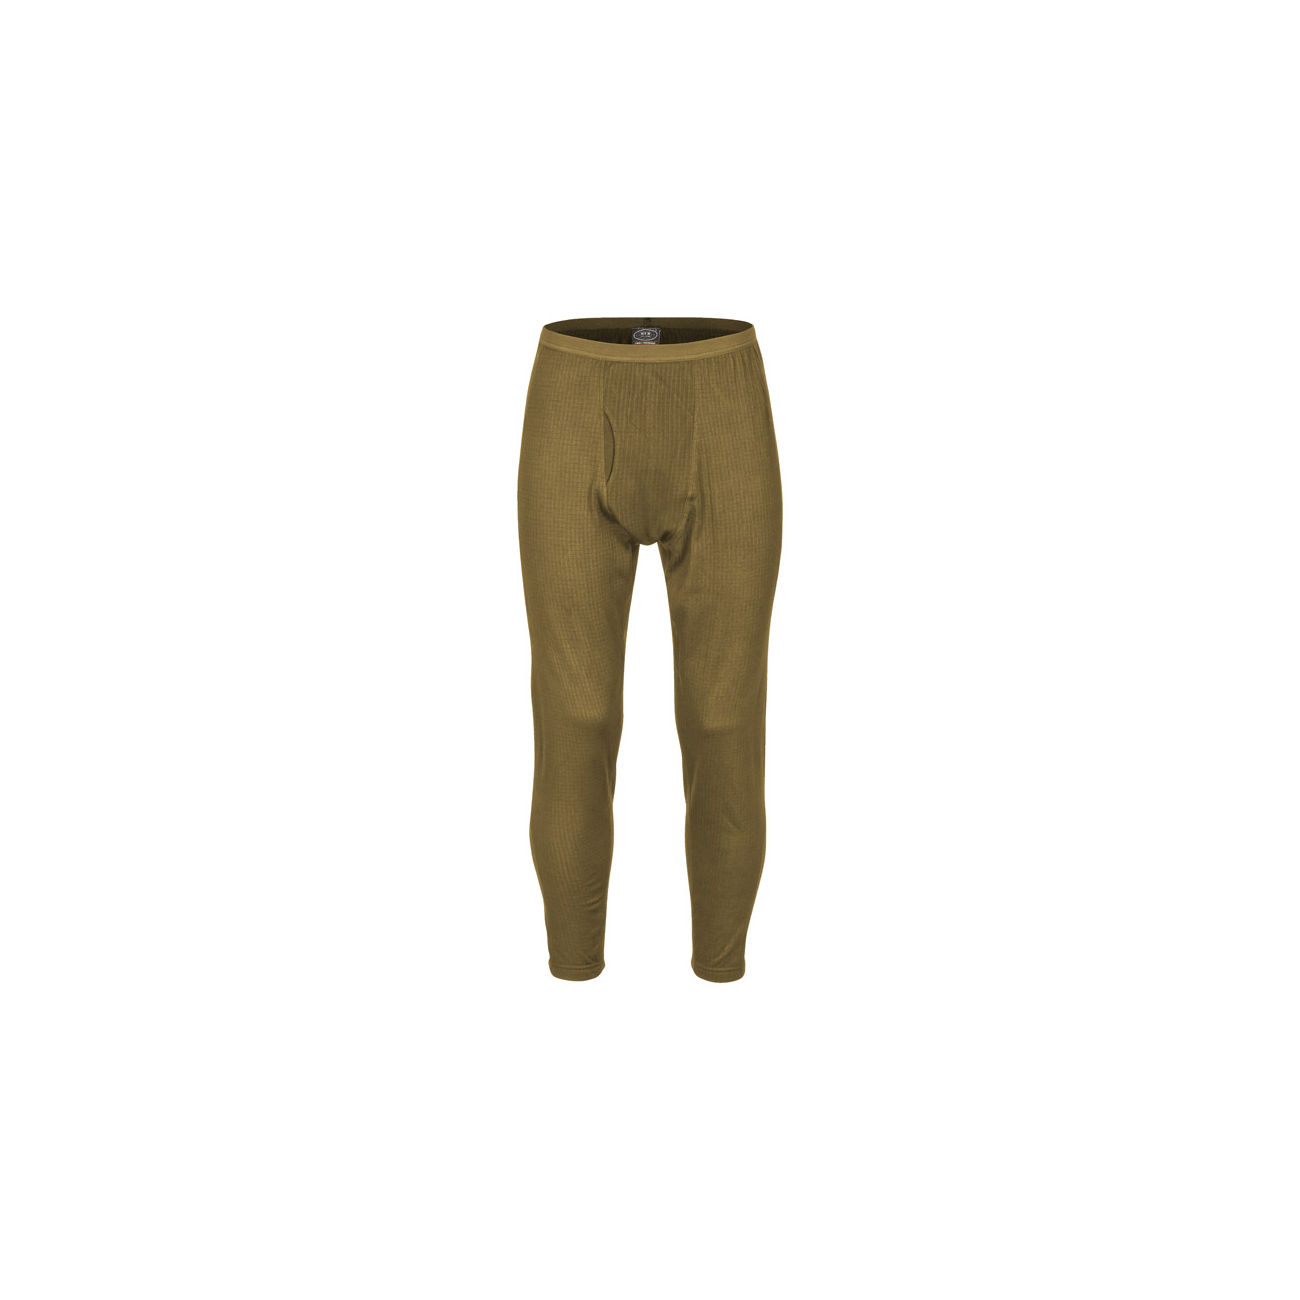 US Unterhose, Level 2, Gen III, Coyote Tan 0